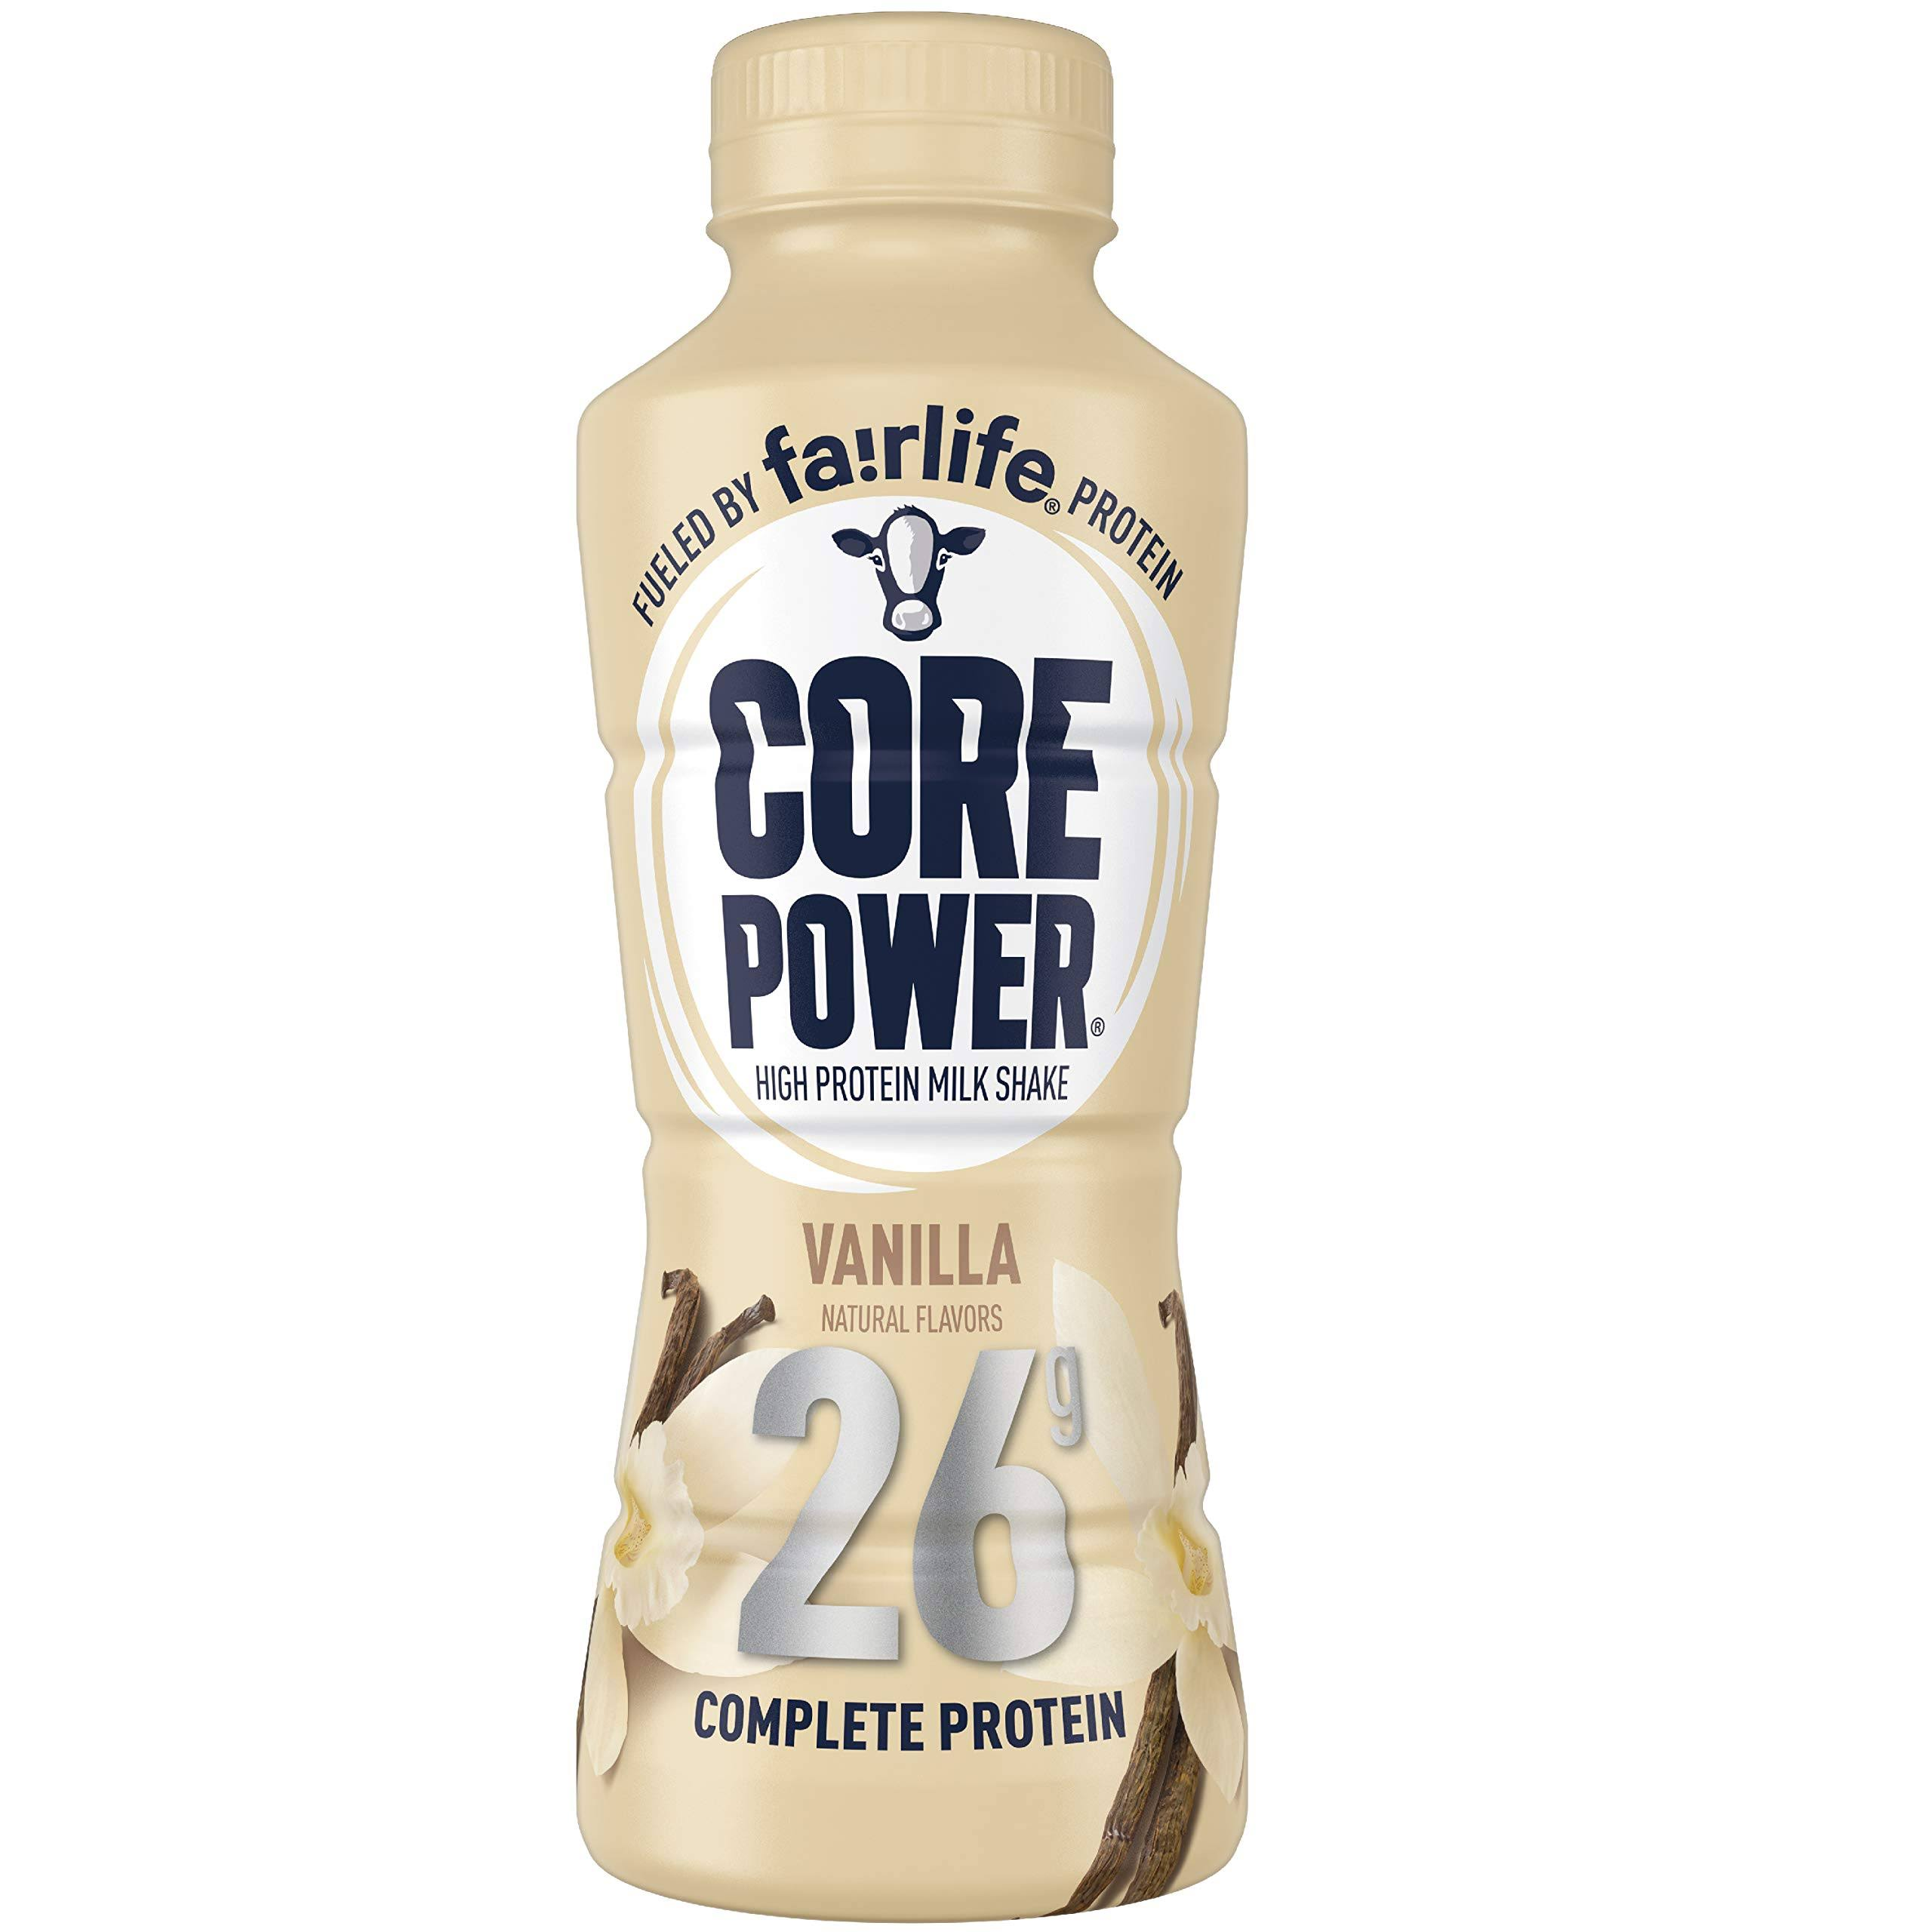 Core Power Milk Shake, High Protein, Vanilla - 14 fl oz